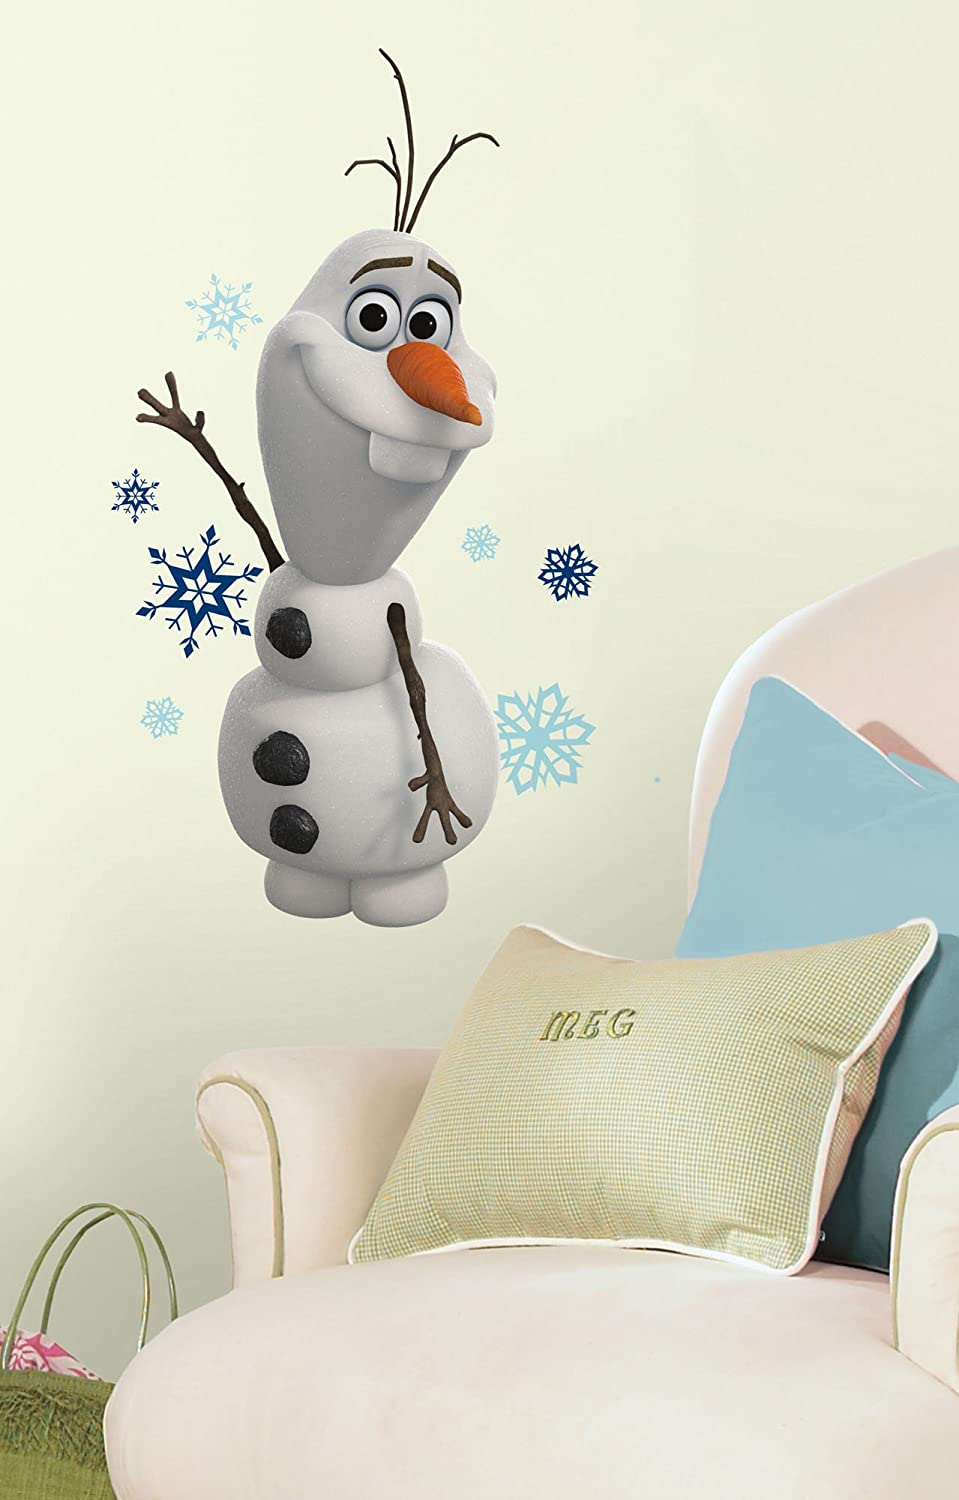 Roommates rmk2372scs frozen olaf the snow man peel and stick wall roommates rmk2372scs frozen olaf the snow man peel and stick wall decals 25 count decorative wall appliques amazon amipublicfo Gallery